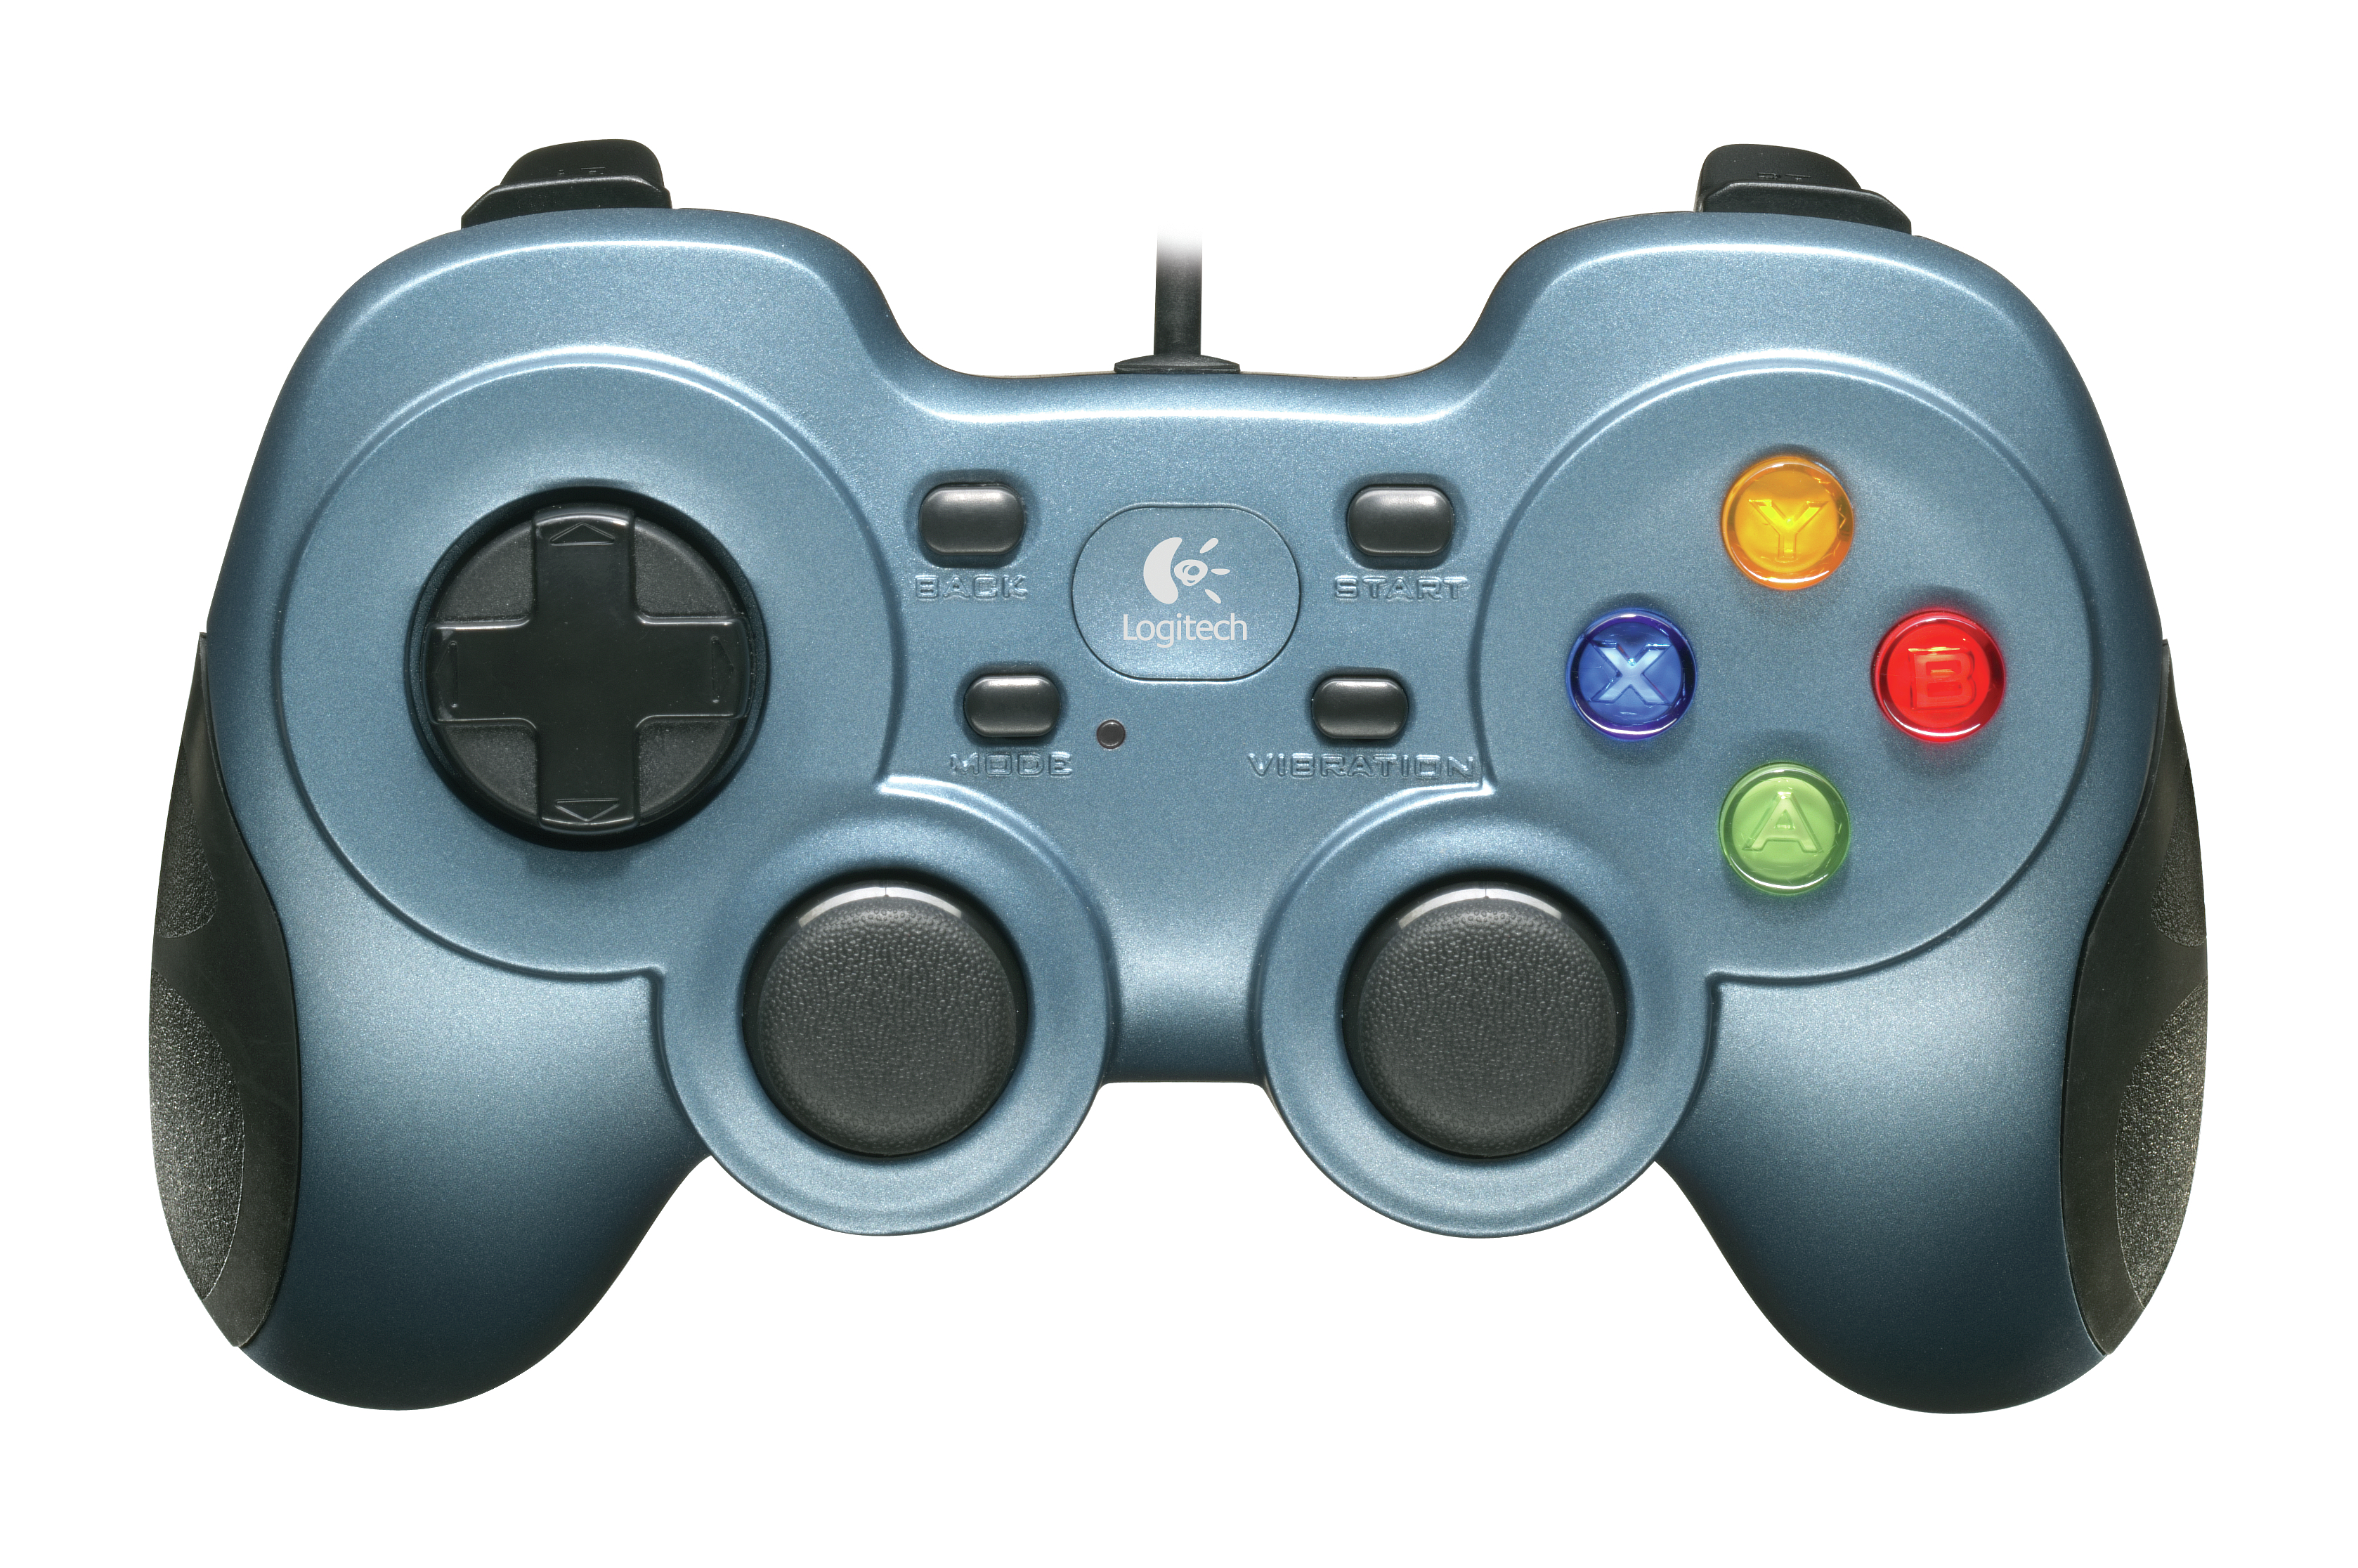 New Logitech Gamepads Bring The Console Gaming Experience